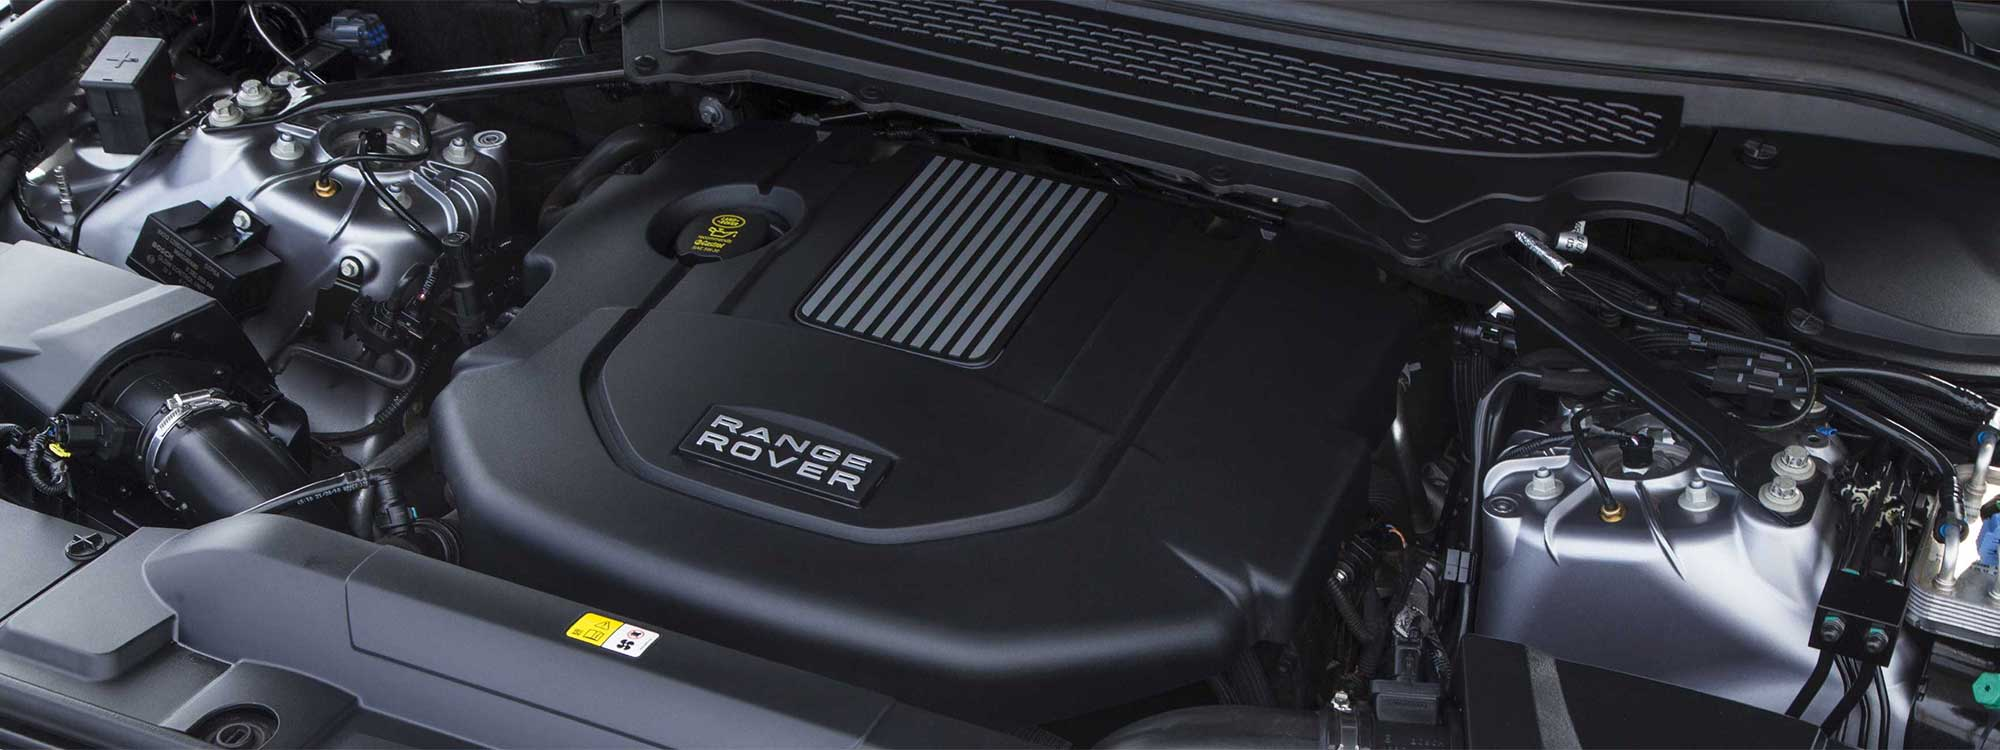 land-rover-range-rover-sport-engine